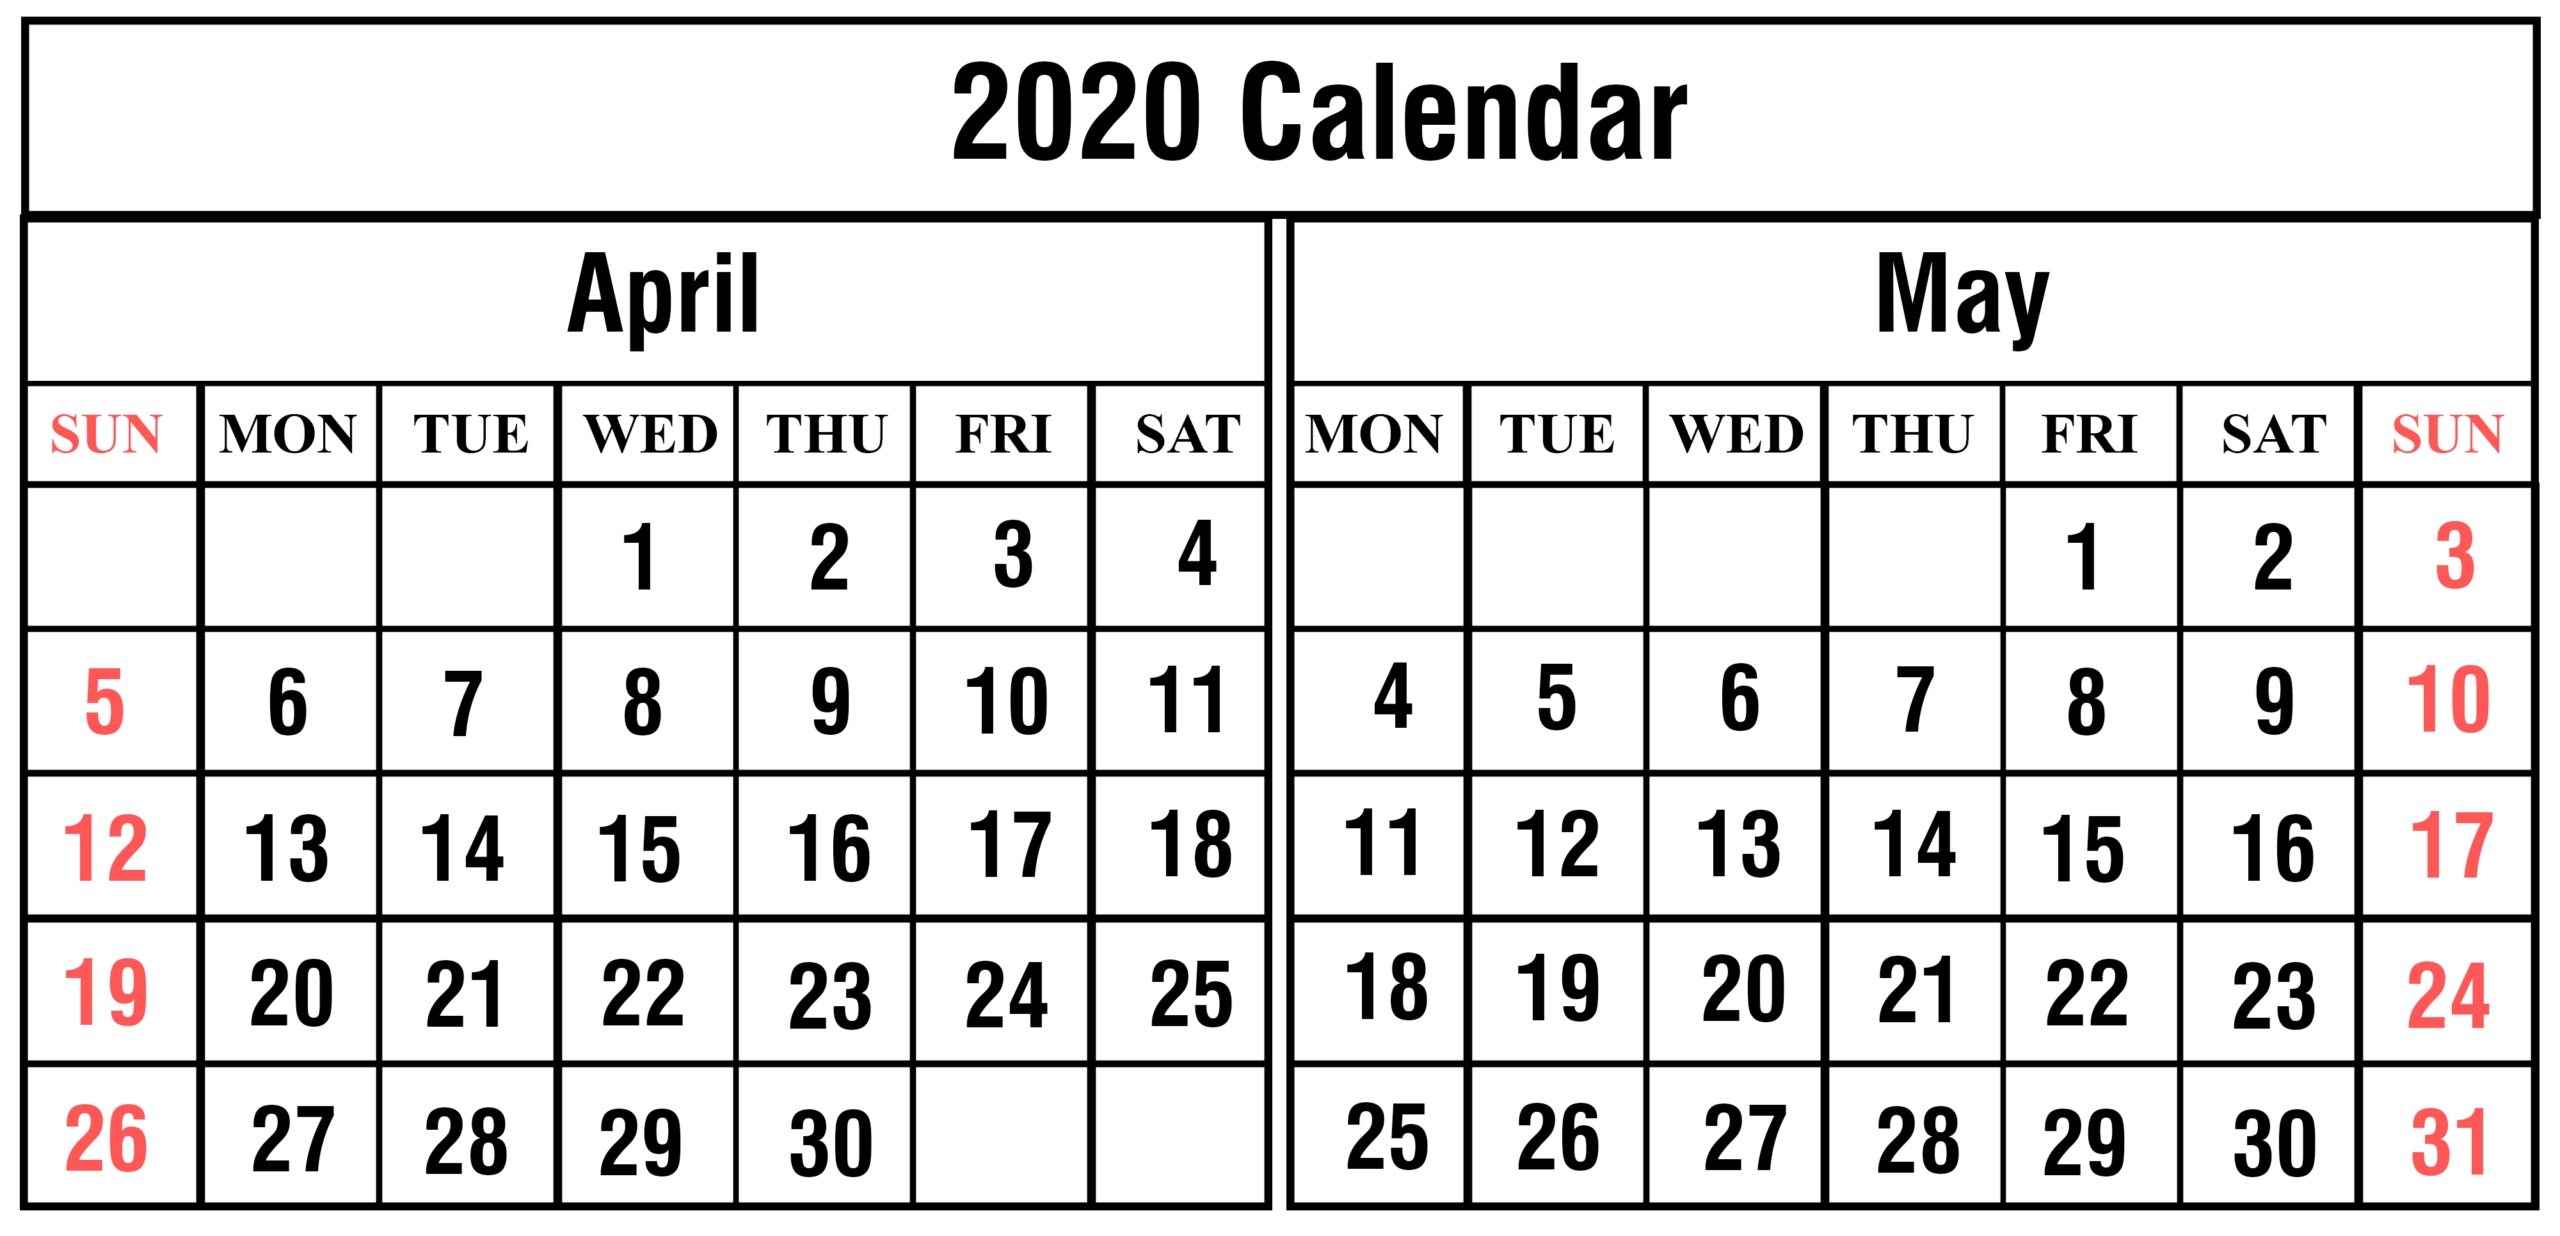 Online April 2020 Calendar - Free Printable Monthly